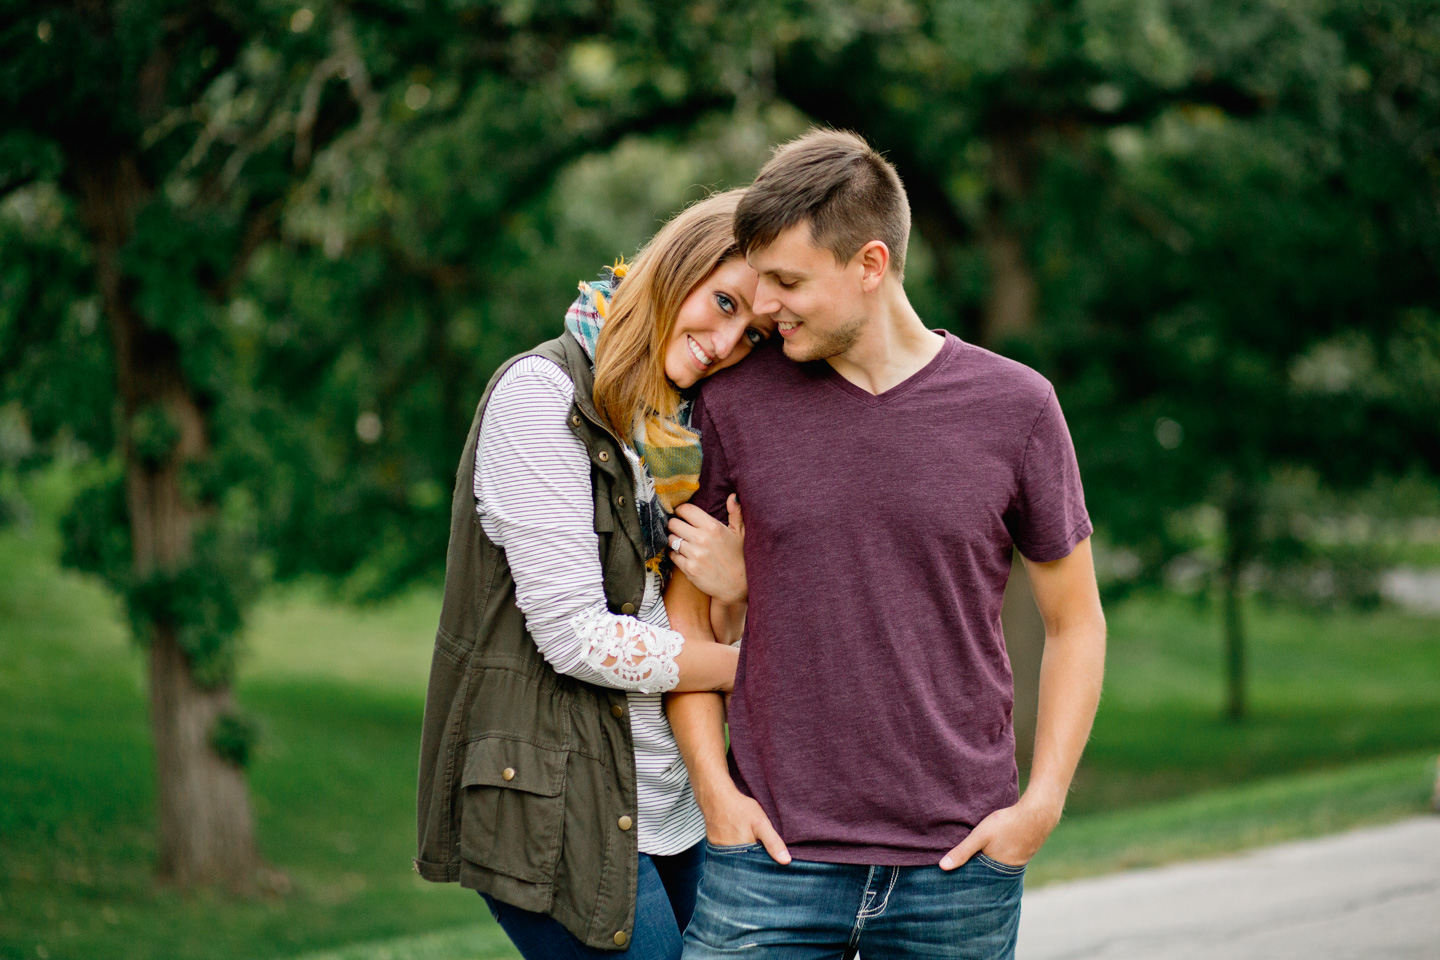 amelia renee is a wedding and engagement photographer serving Ames and Des Moines, Iowa